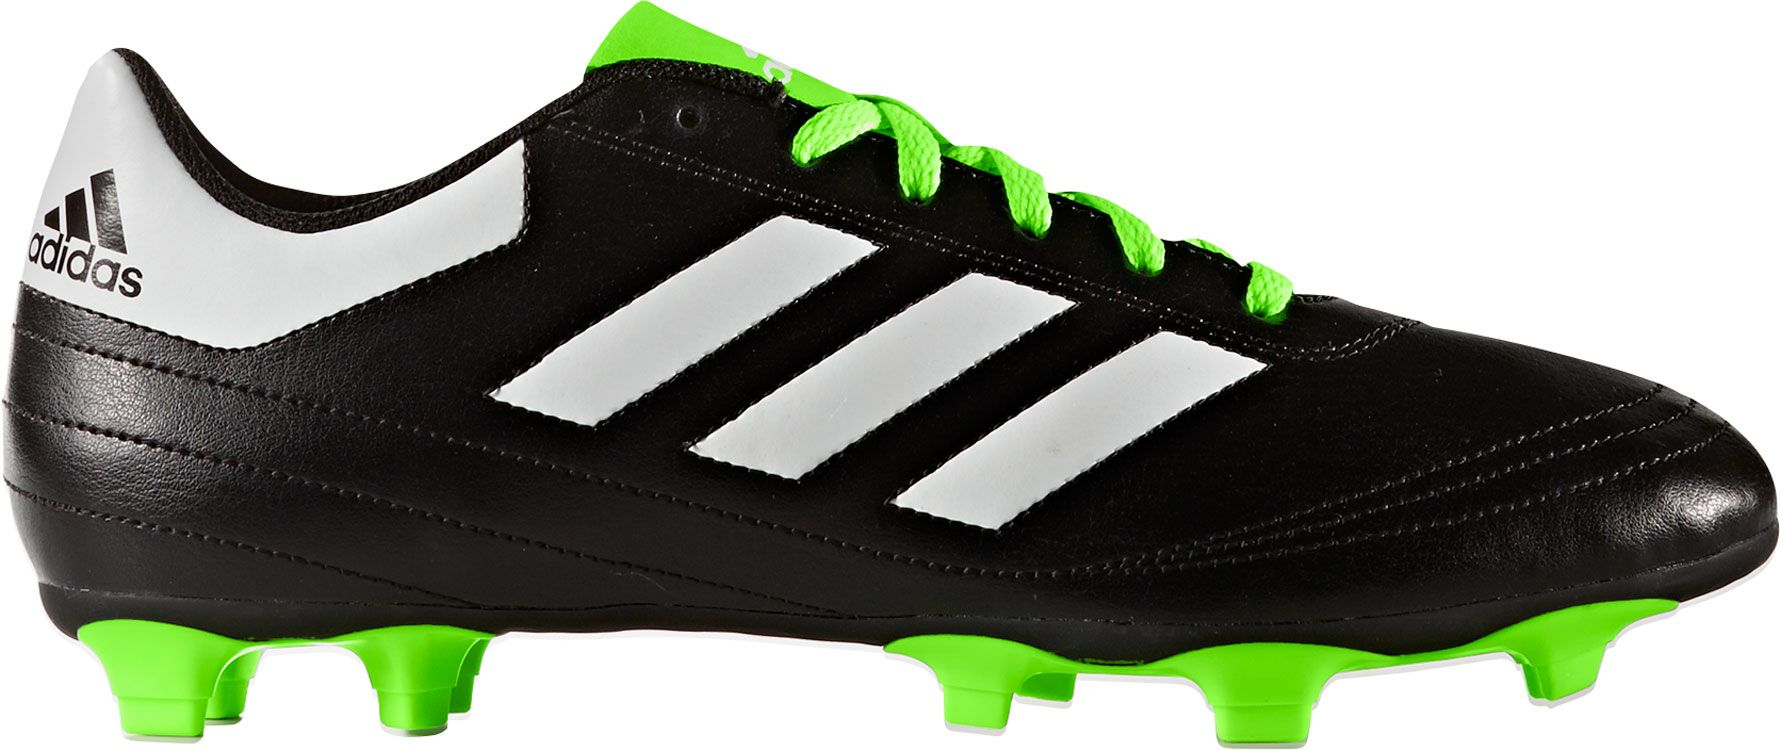 Cheap Sale Affordable adidas Goletto VI FG Shopping Online For Sale New And Fashion Sale Get Authentic Discount Codes Shopping Online V9khR